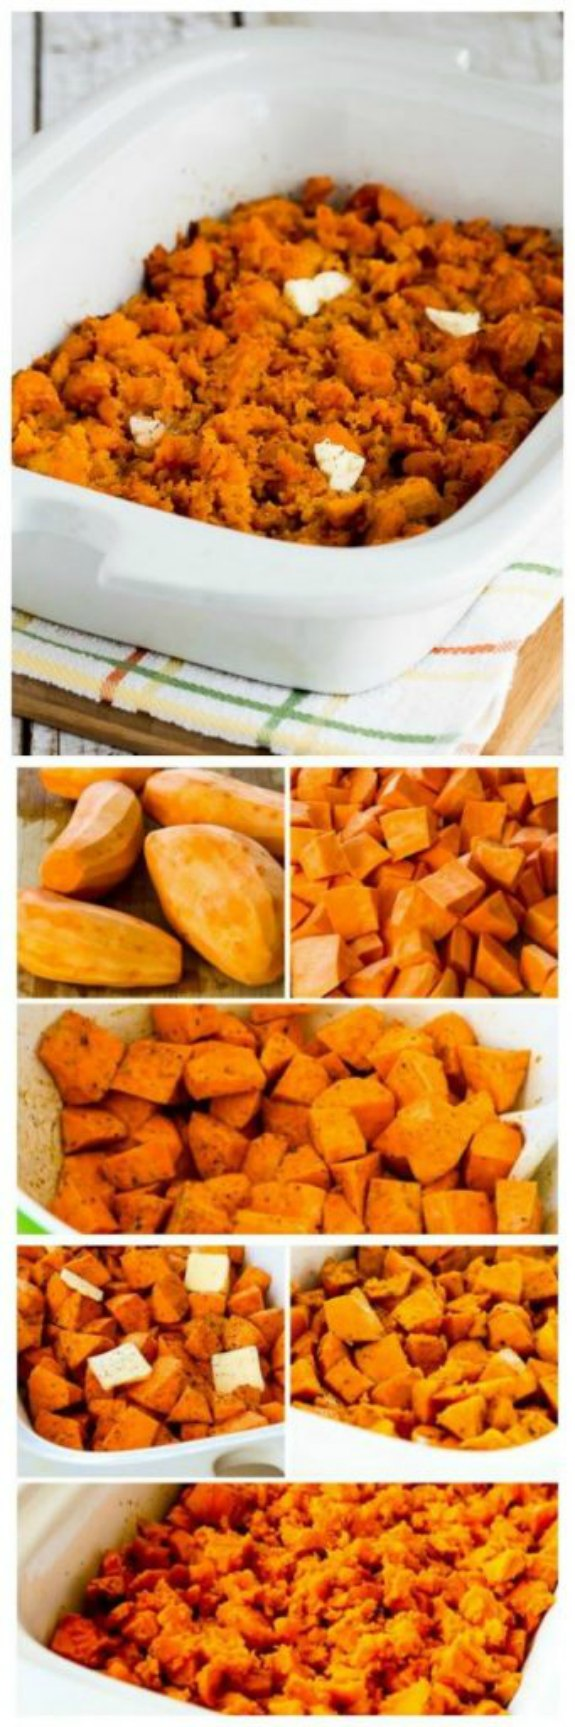 Slow Cooker Spicy Sweet Potatoes Recipe from Kalyn's Kitchen found on Slow Cooker or Pressure Cooker at  SlowCookerFromScratch.com